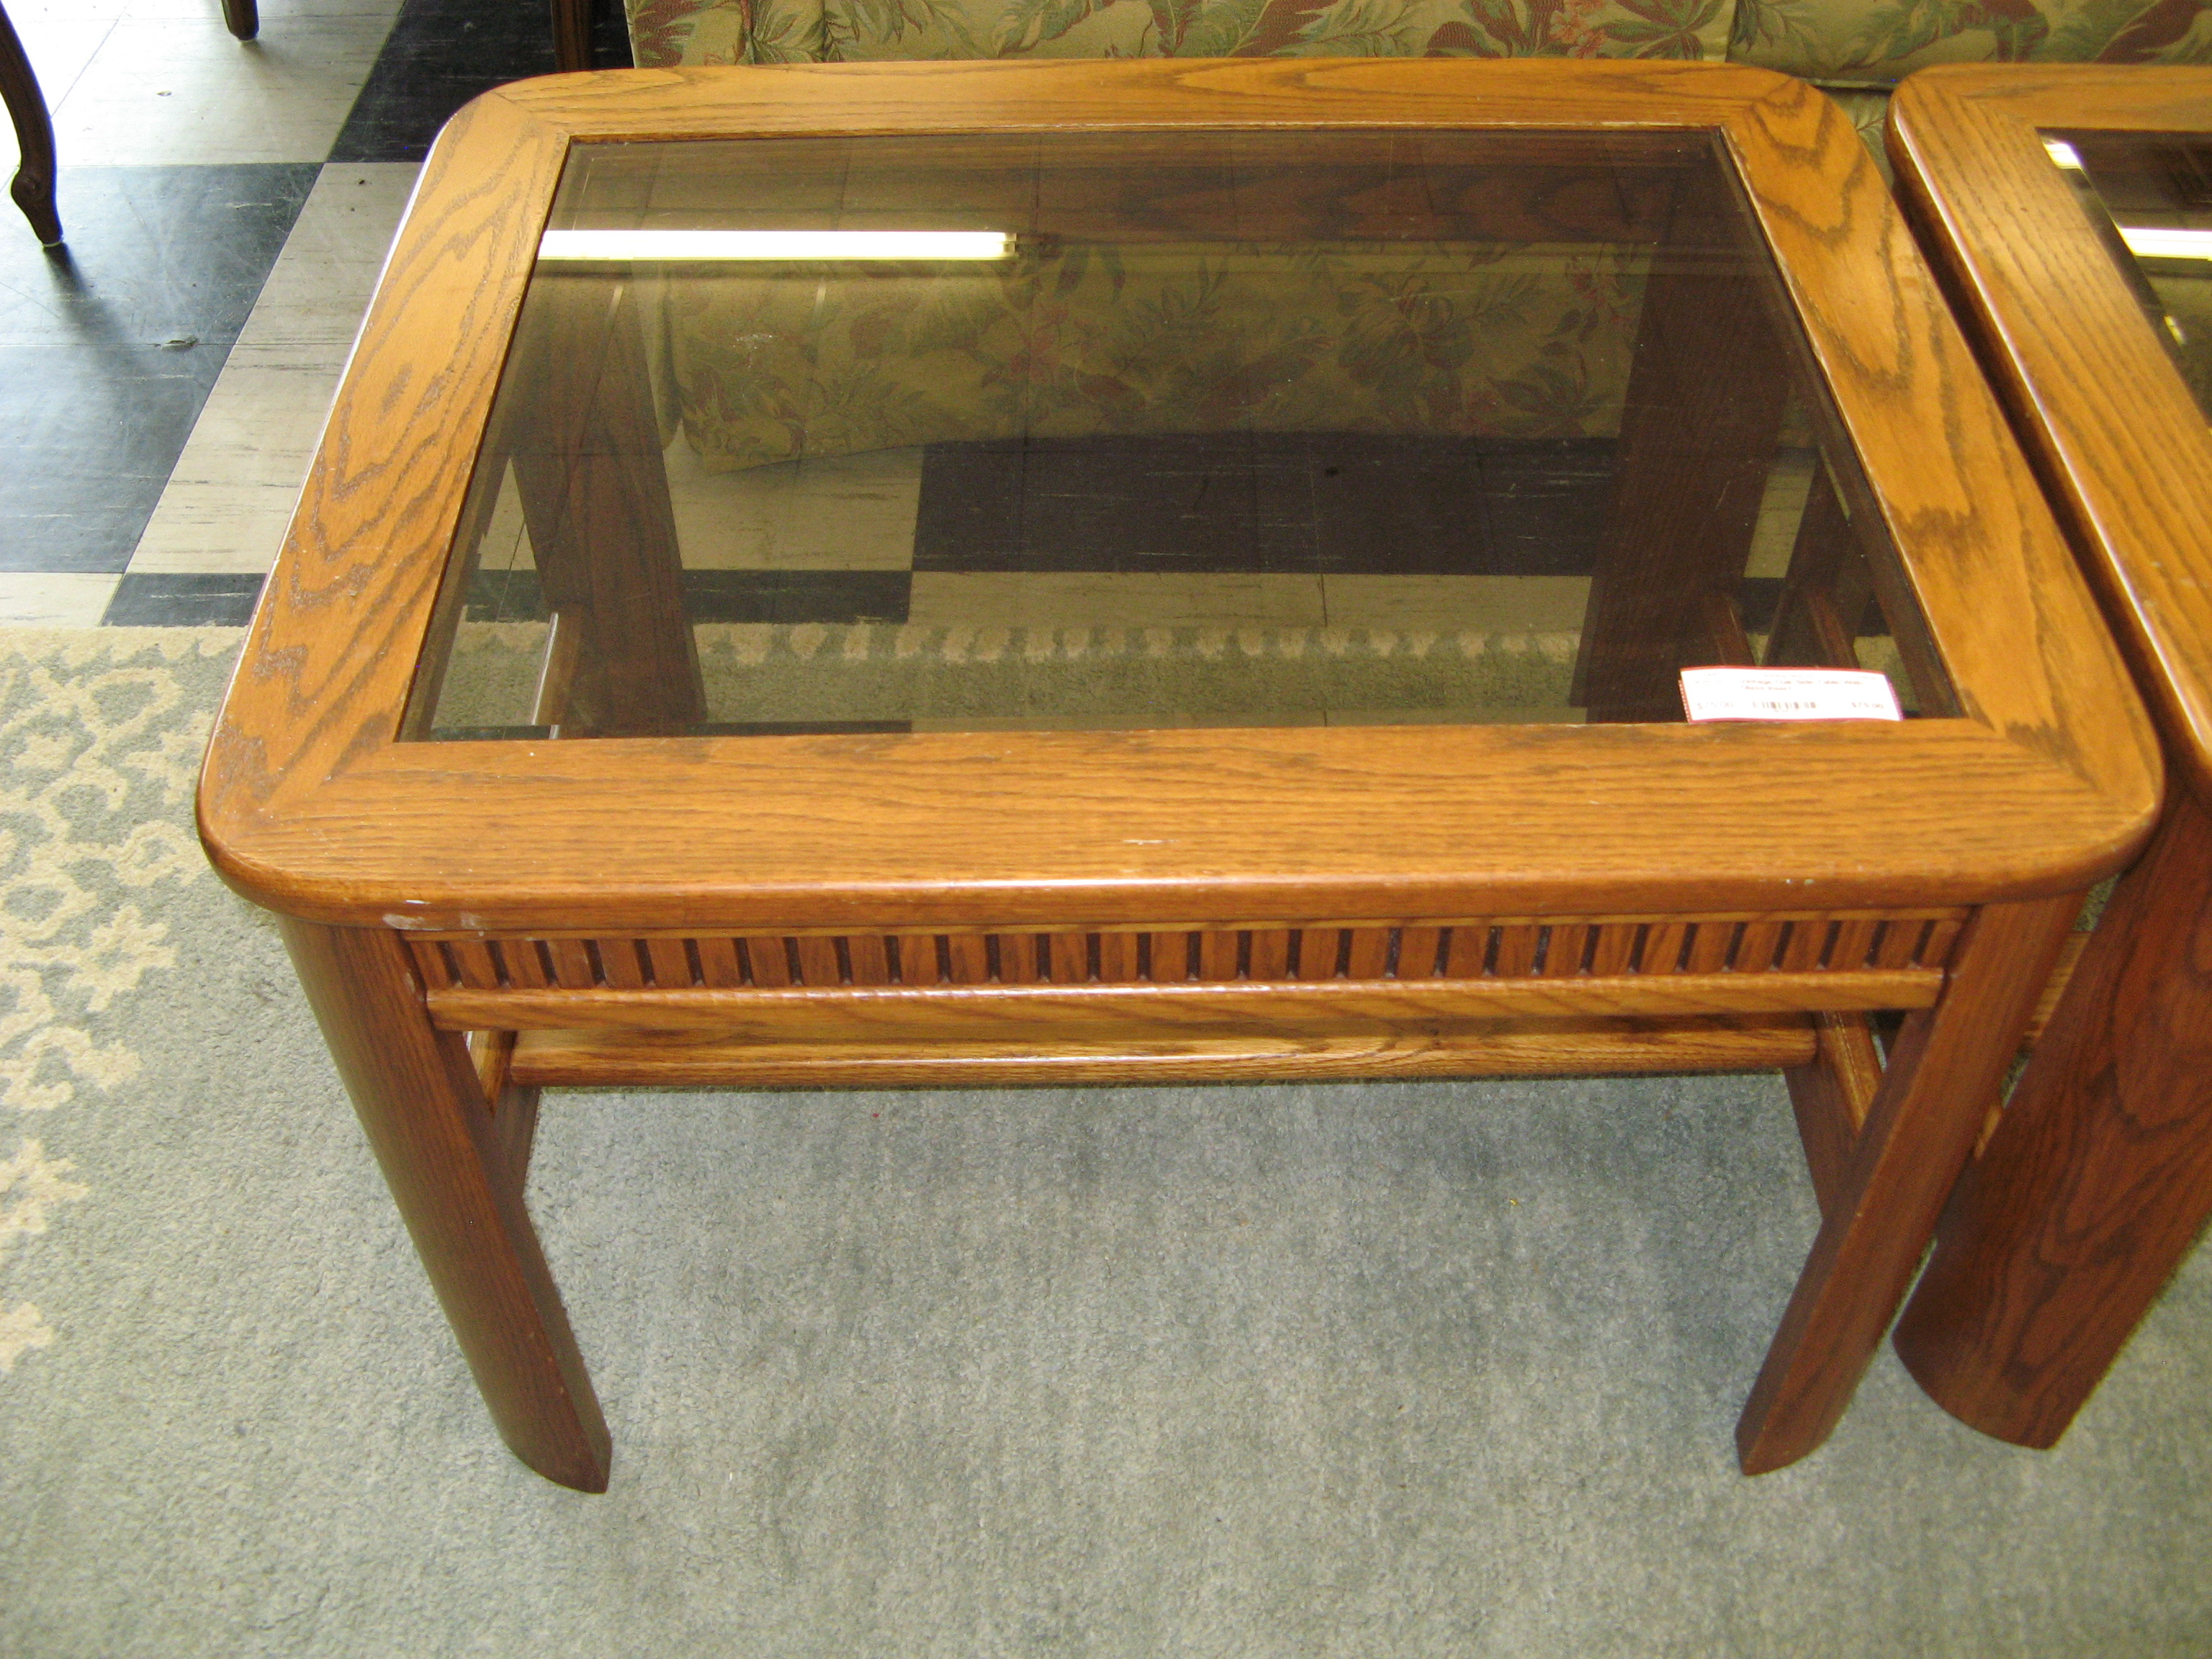 Vintage Oak Side Table with Inset Glass Top